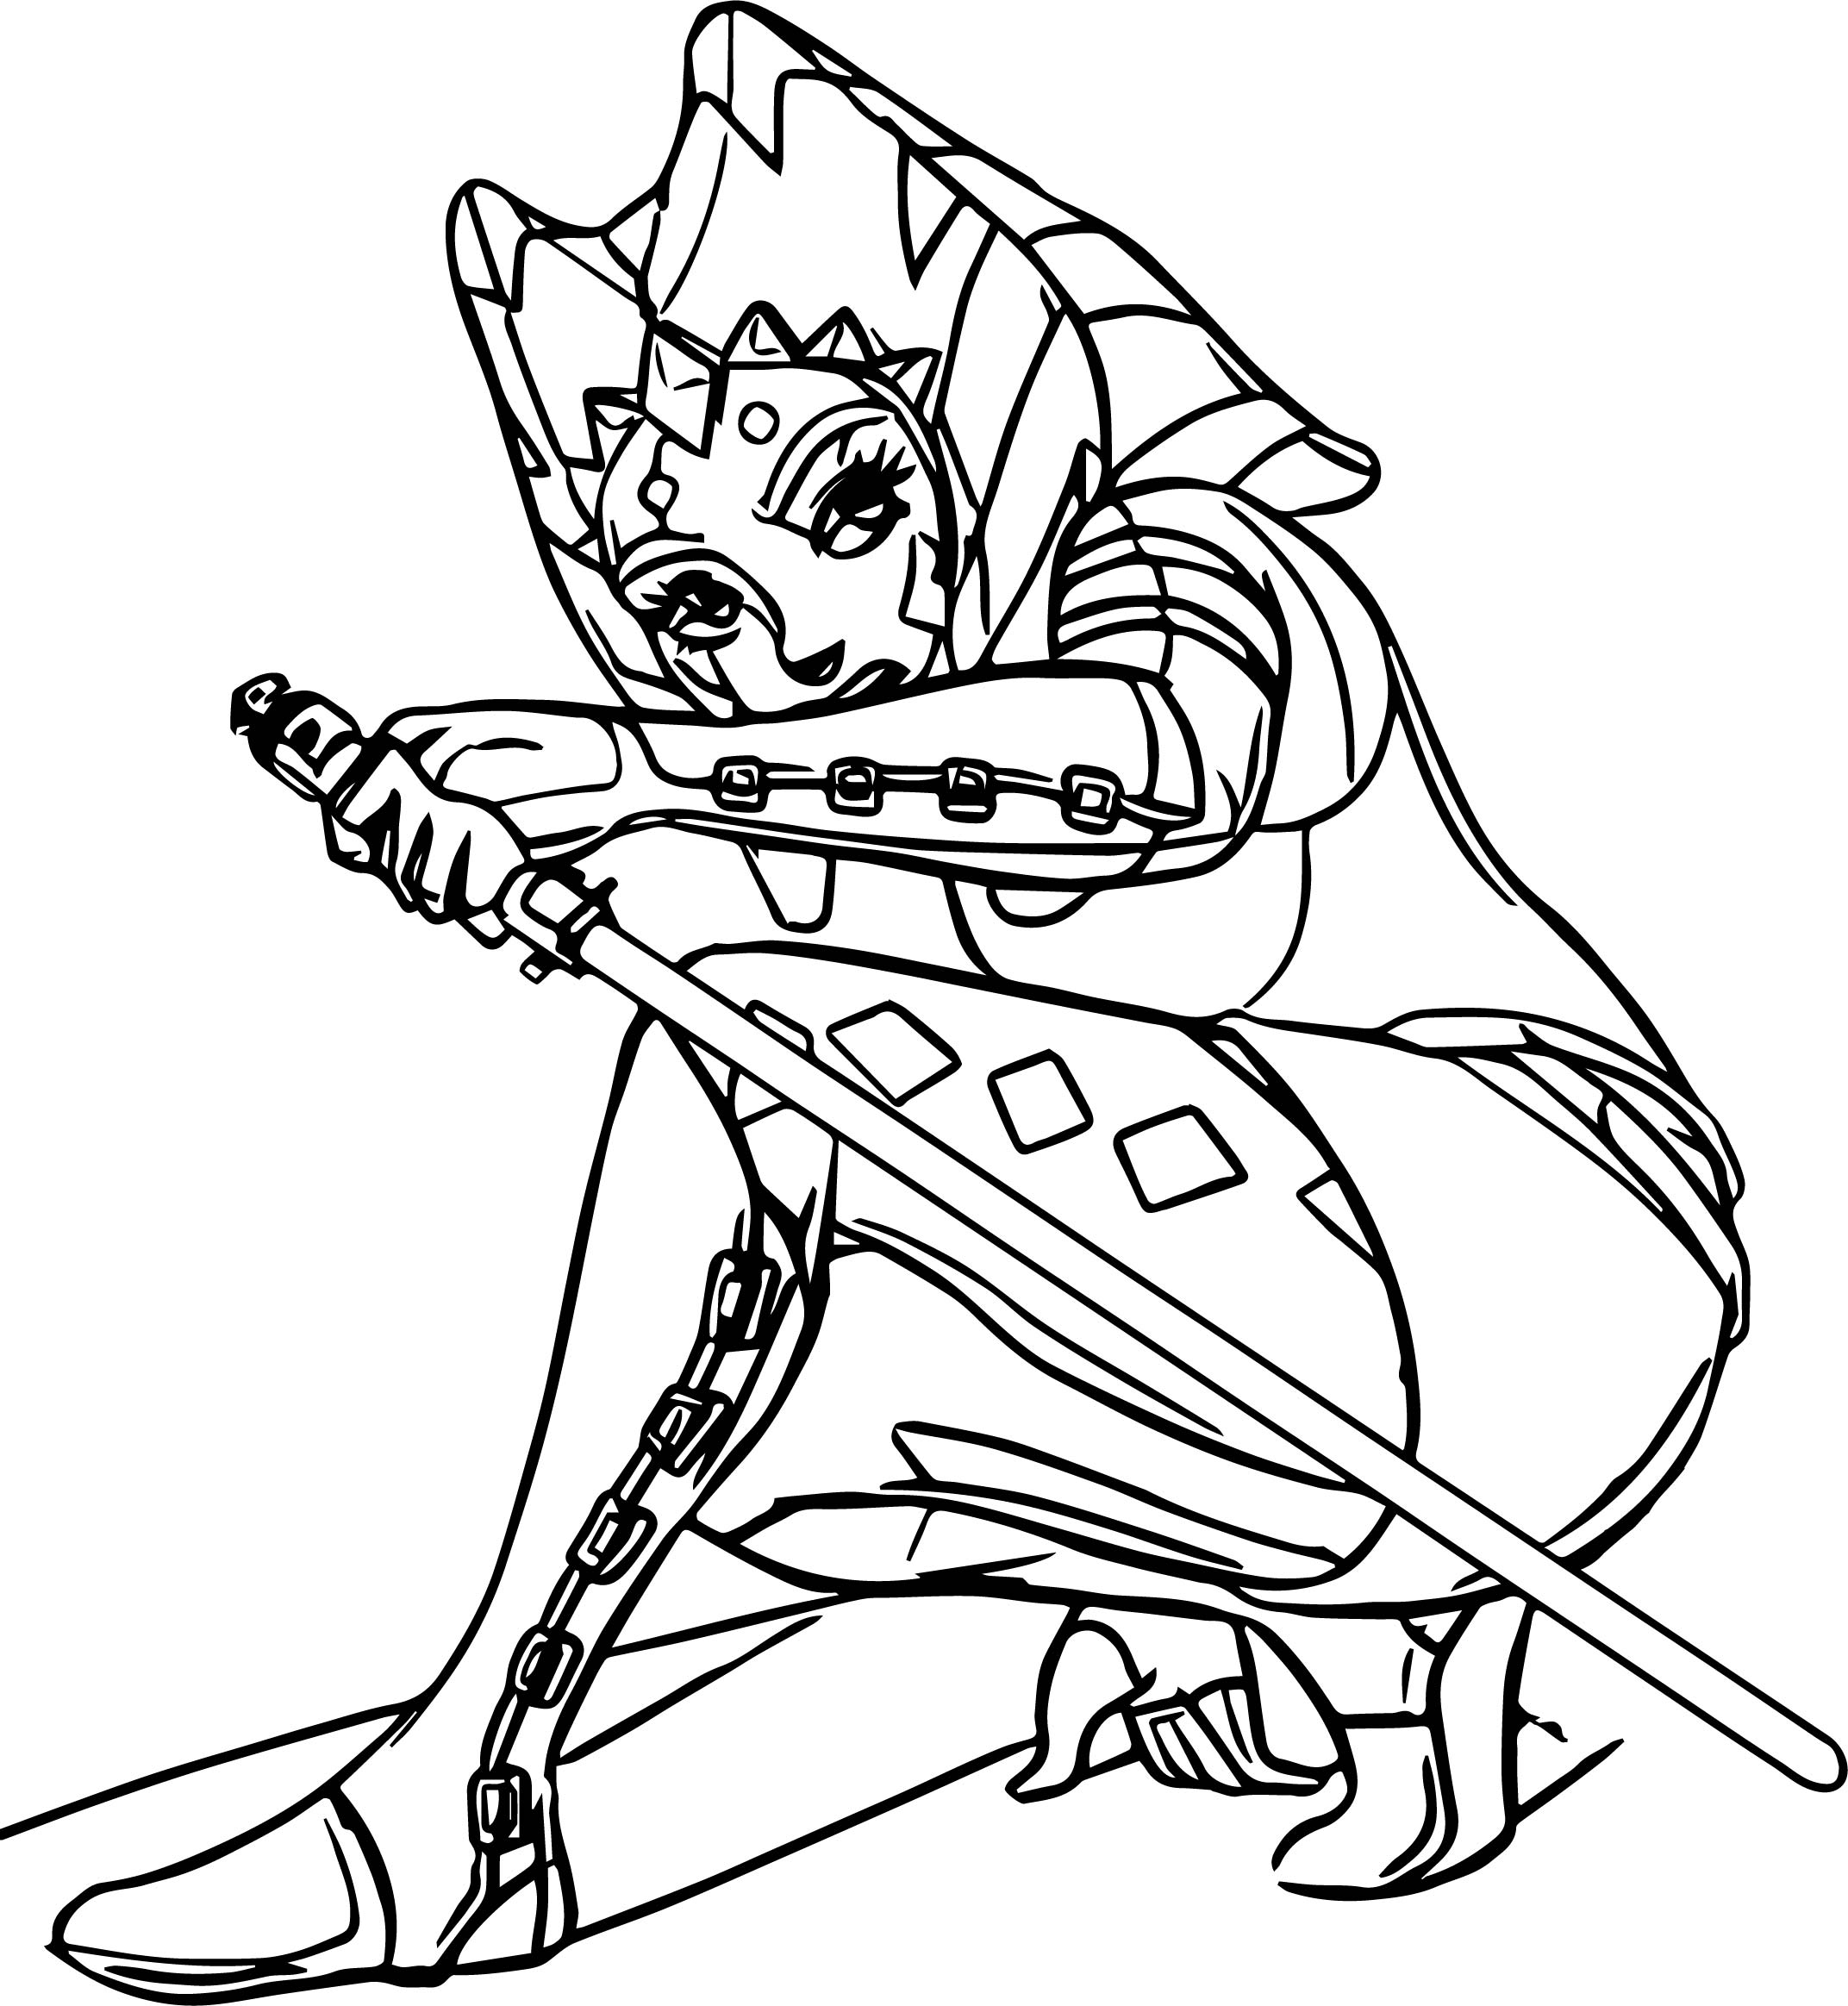 Ahsoka Tano Guard Coloring Page